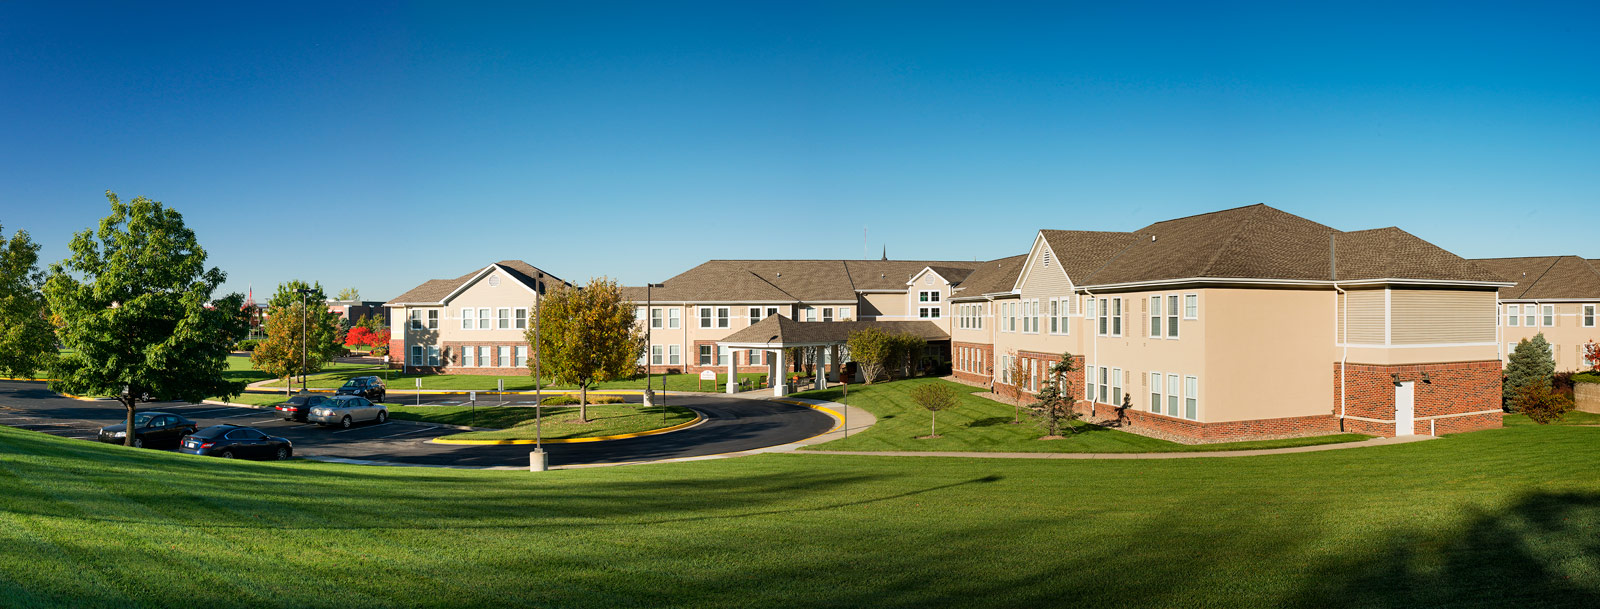 Senior living in Olathe has well landscaped yards